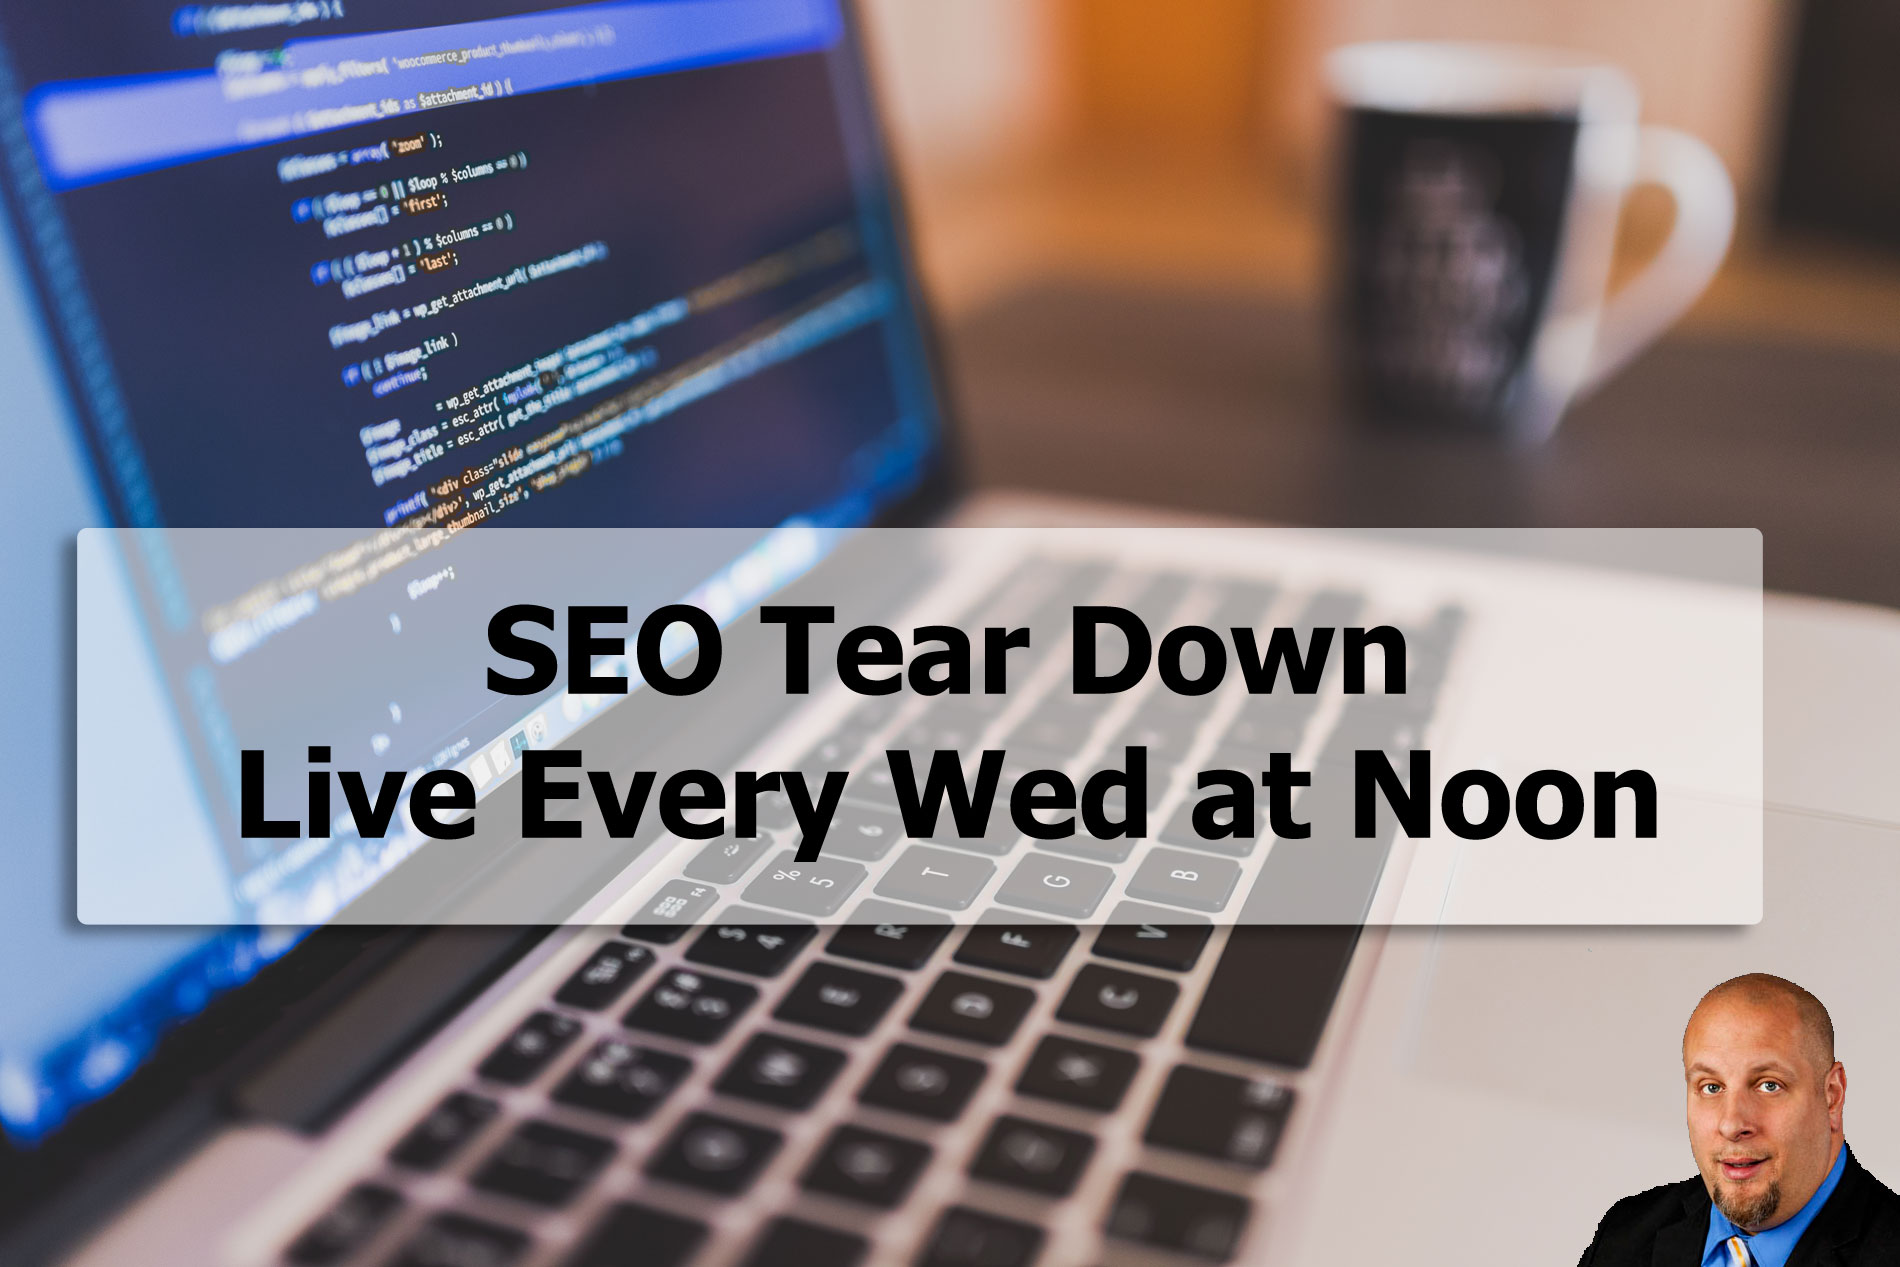 SEO Tear Down